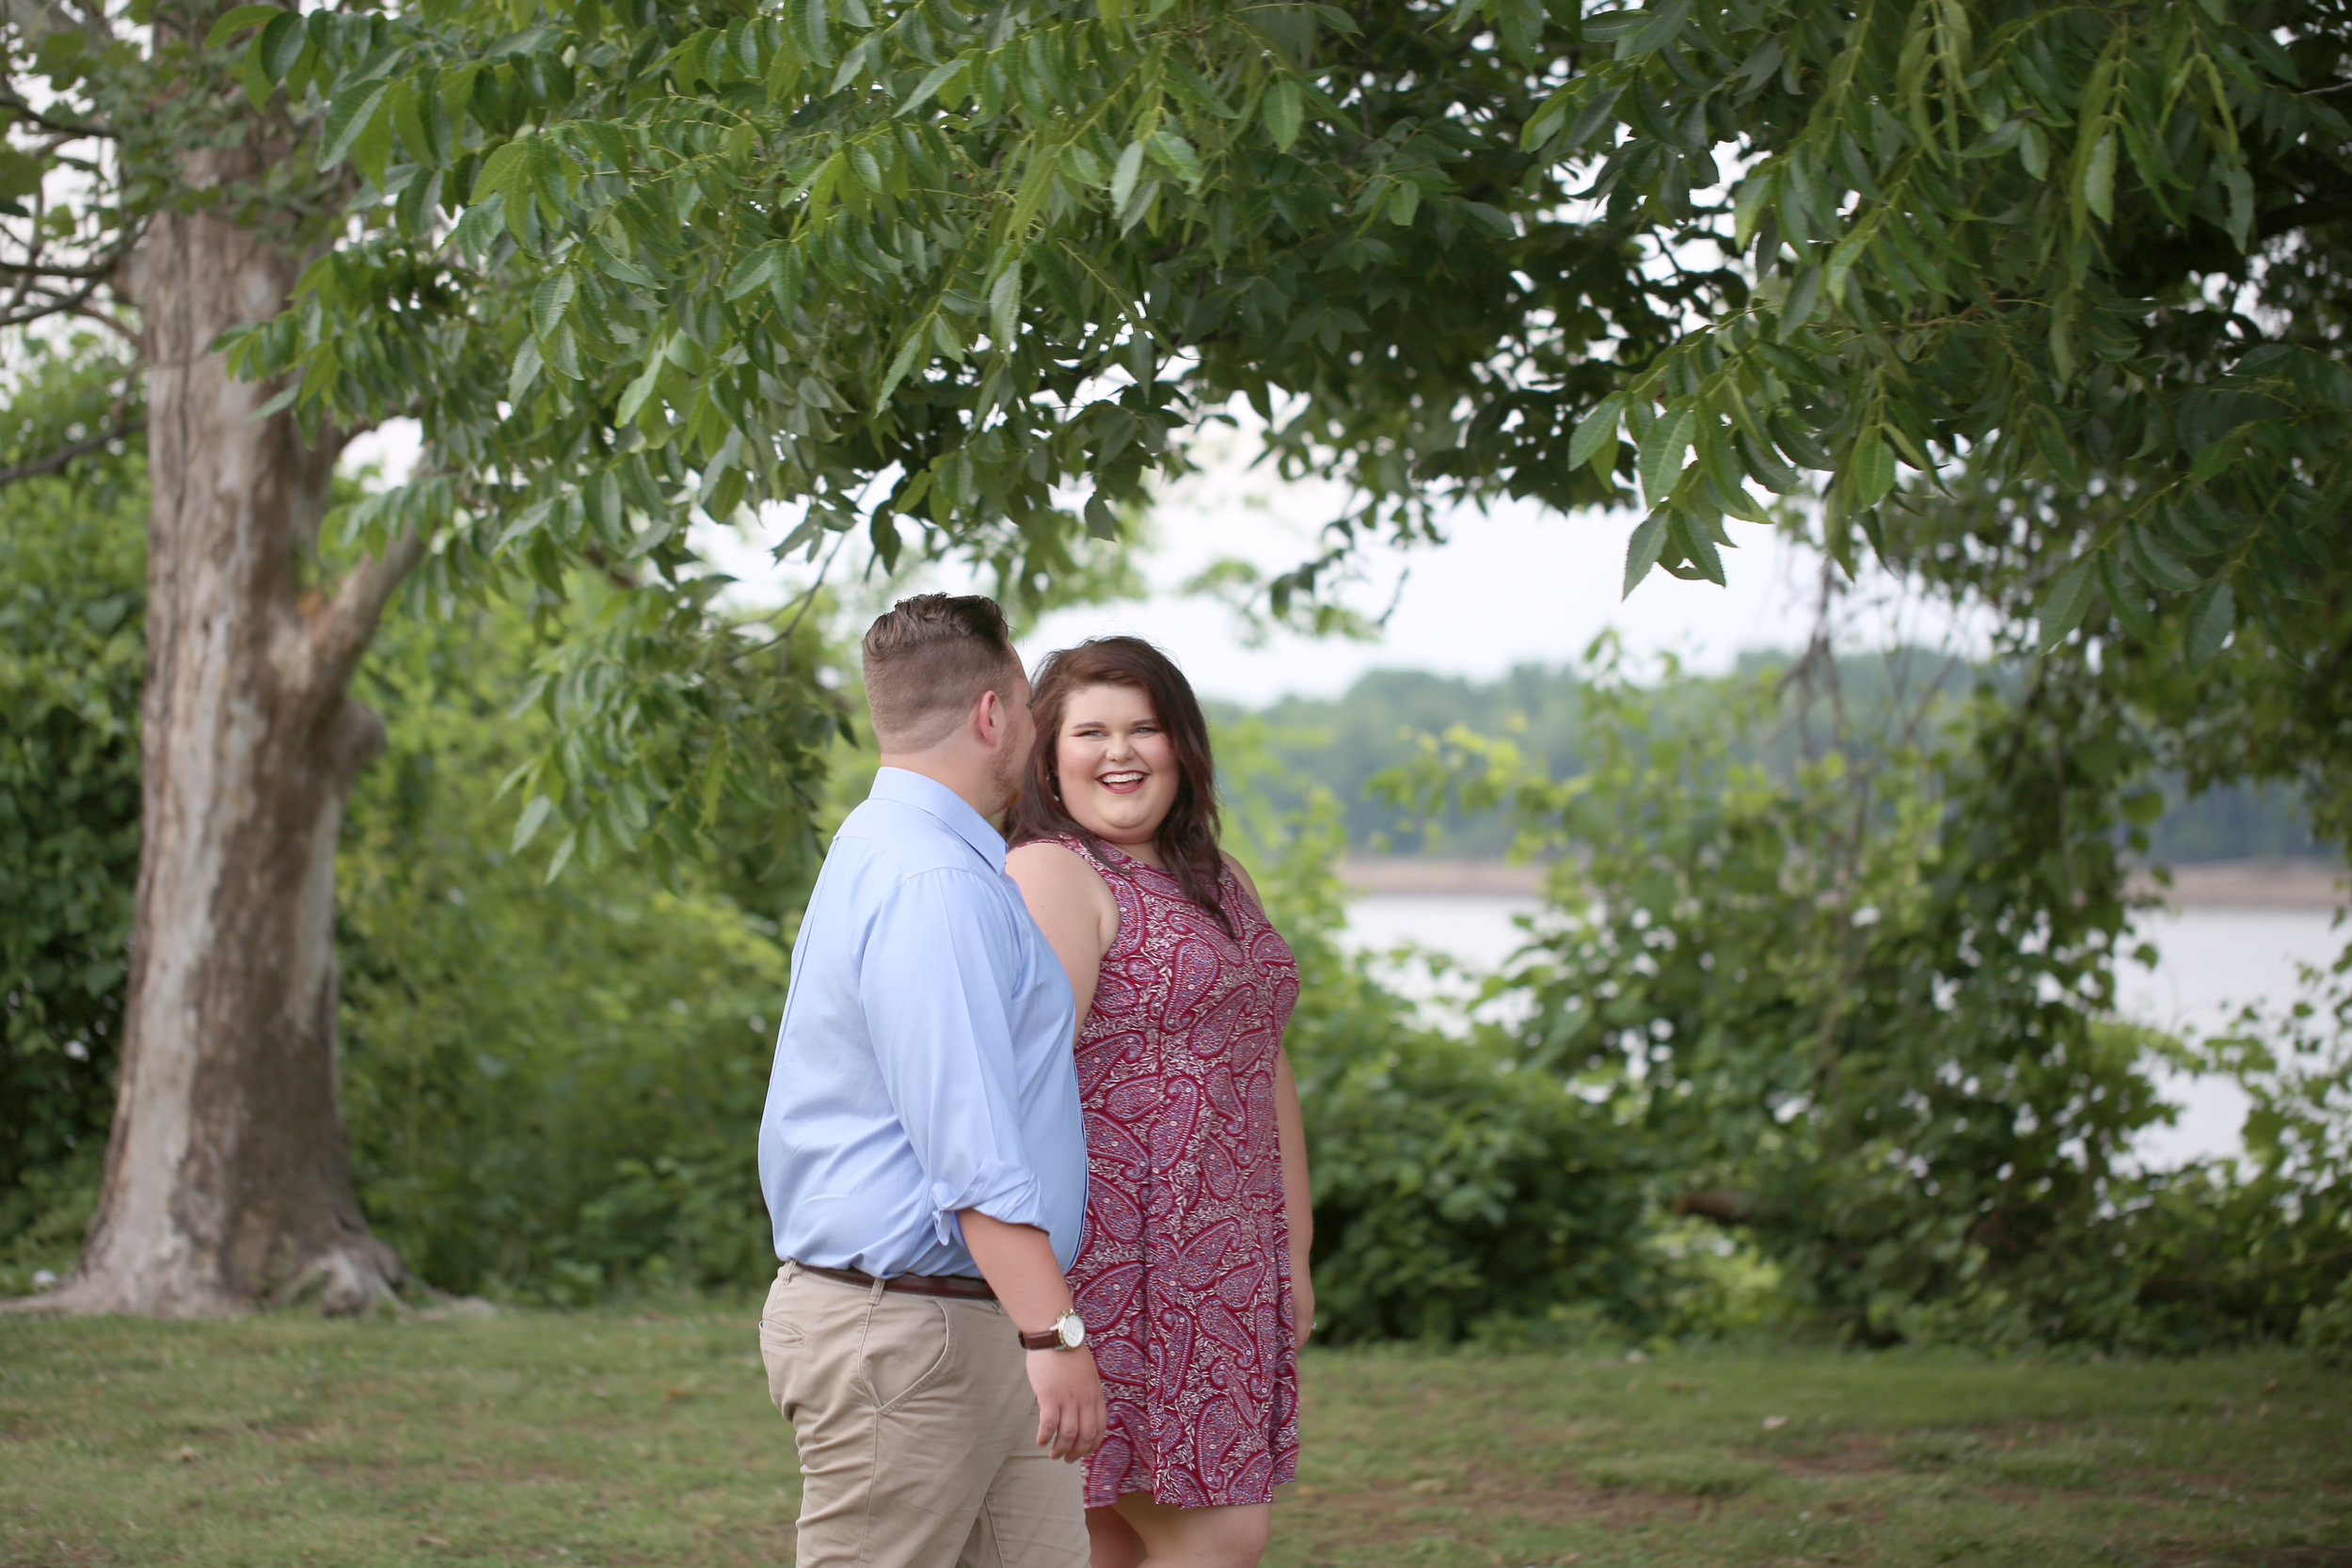 shelby_travis_engagement_0154.jpg